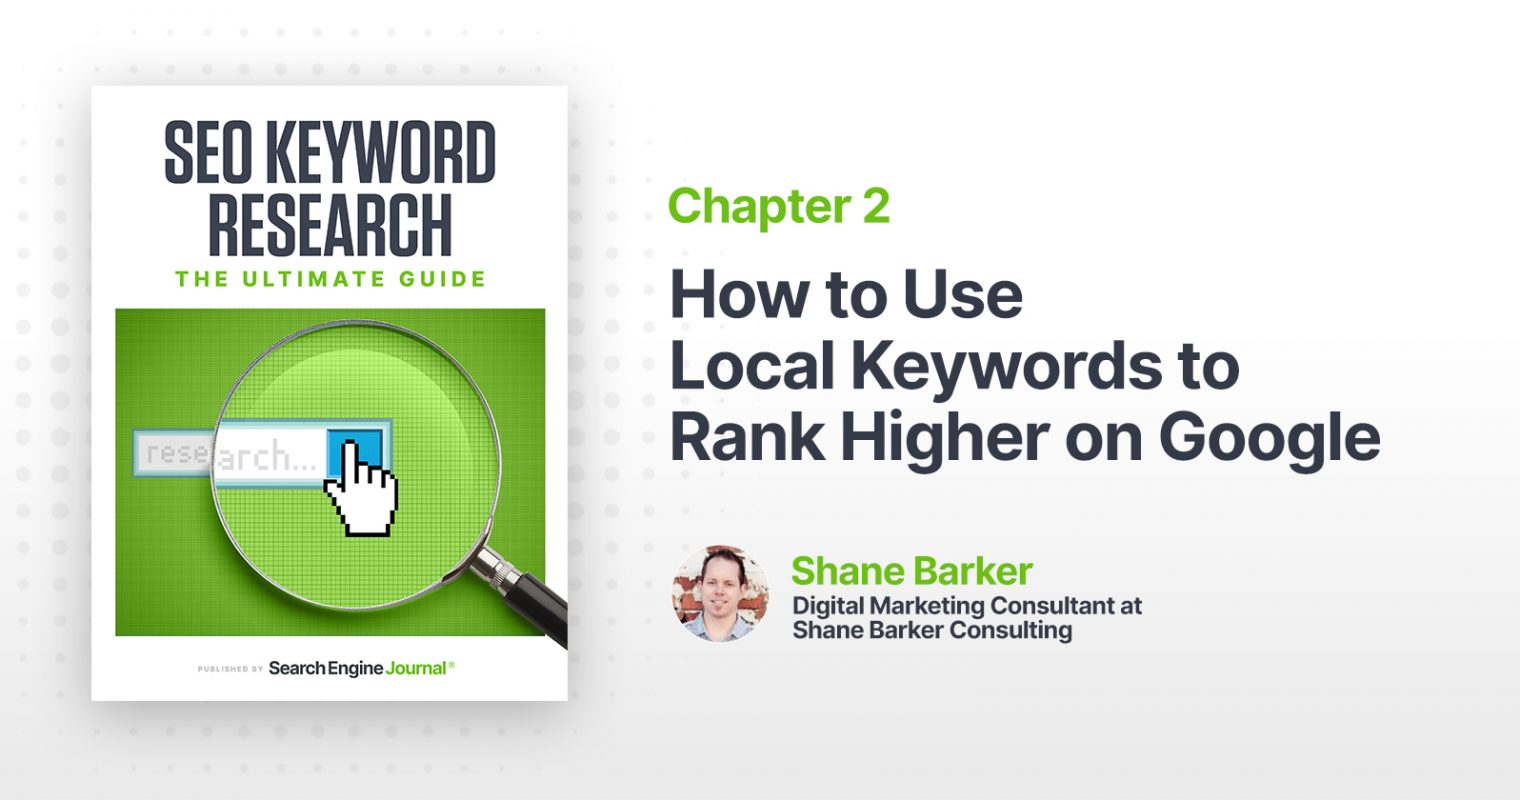 How to Use Local Keywords to Rank Higher on Google